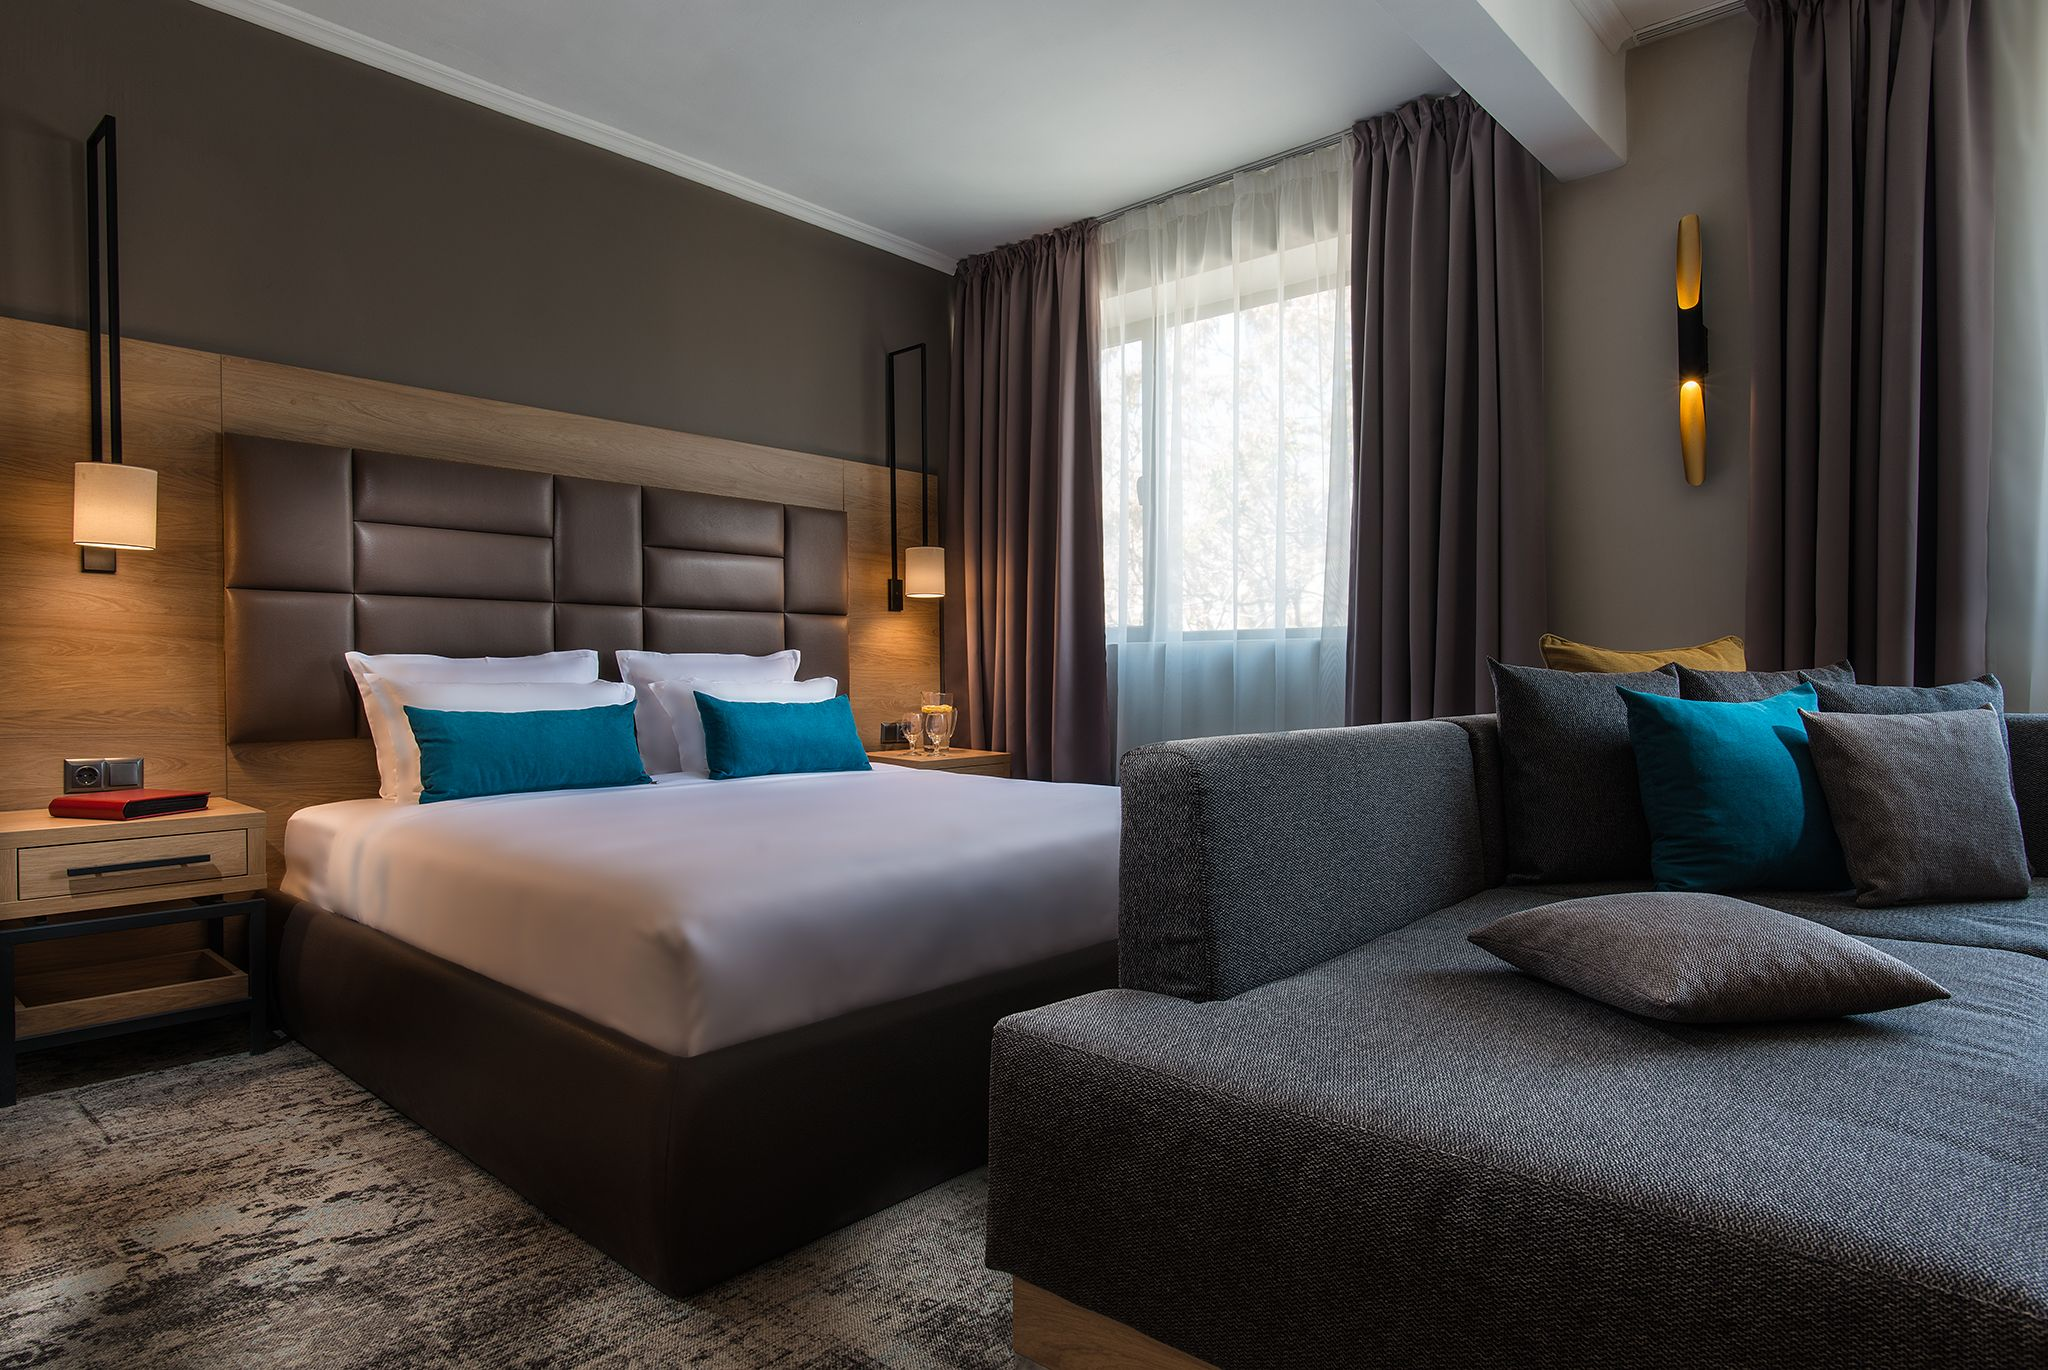 The Stay Hotel Plovdiv